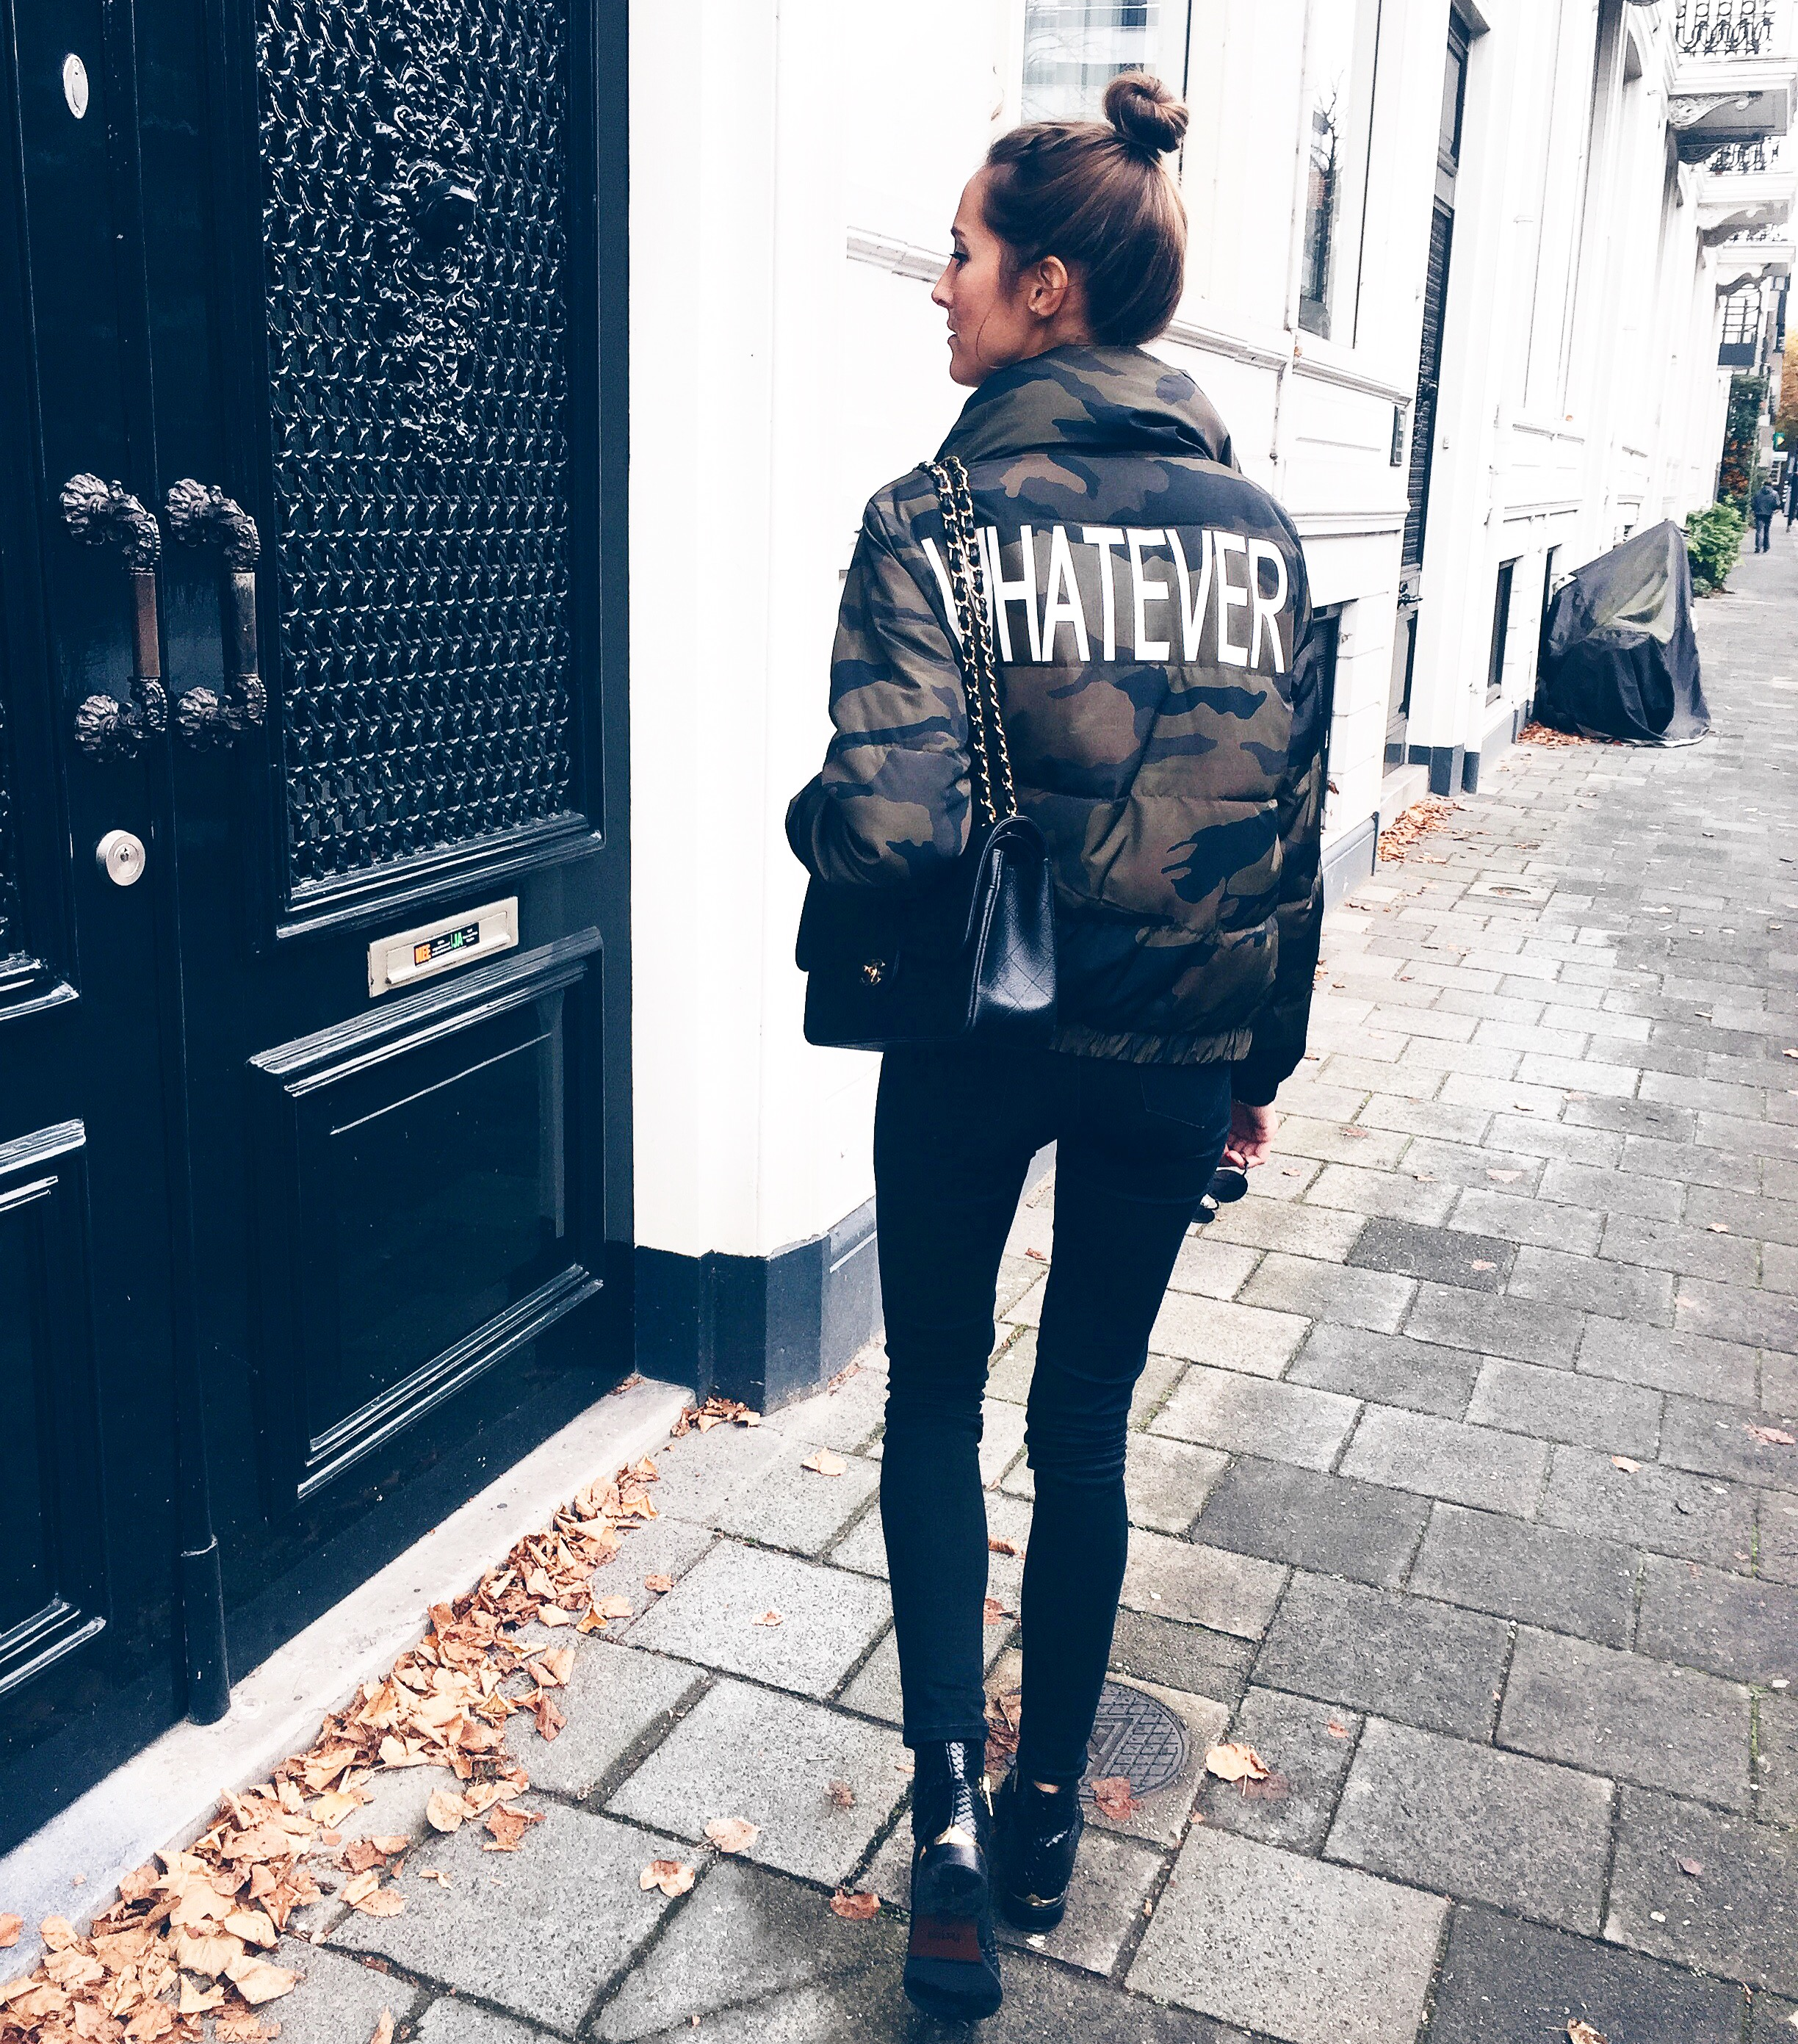 linda_tsetis_worlds_affair_whatever_jacket_style_ootd